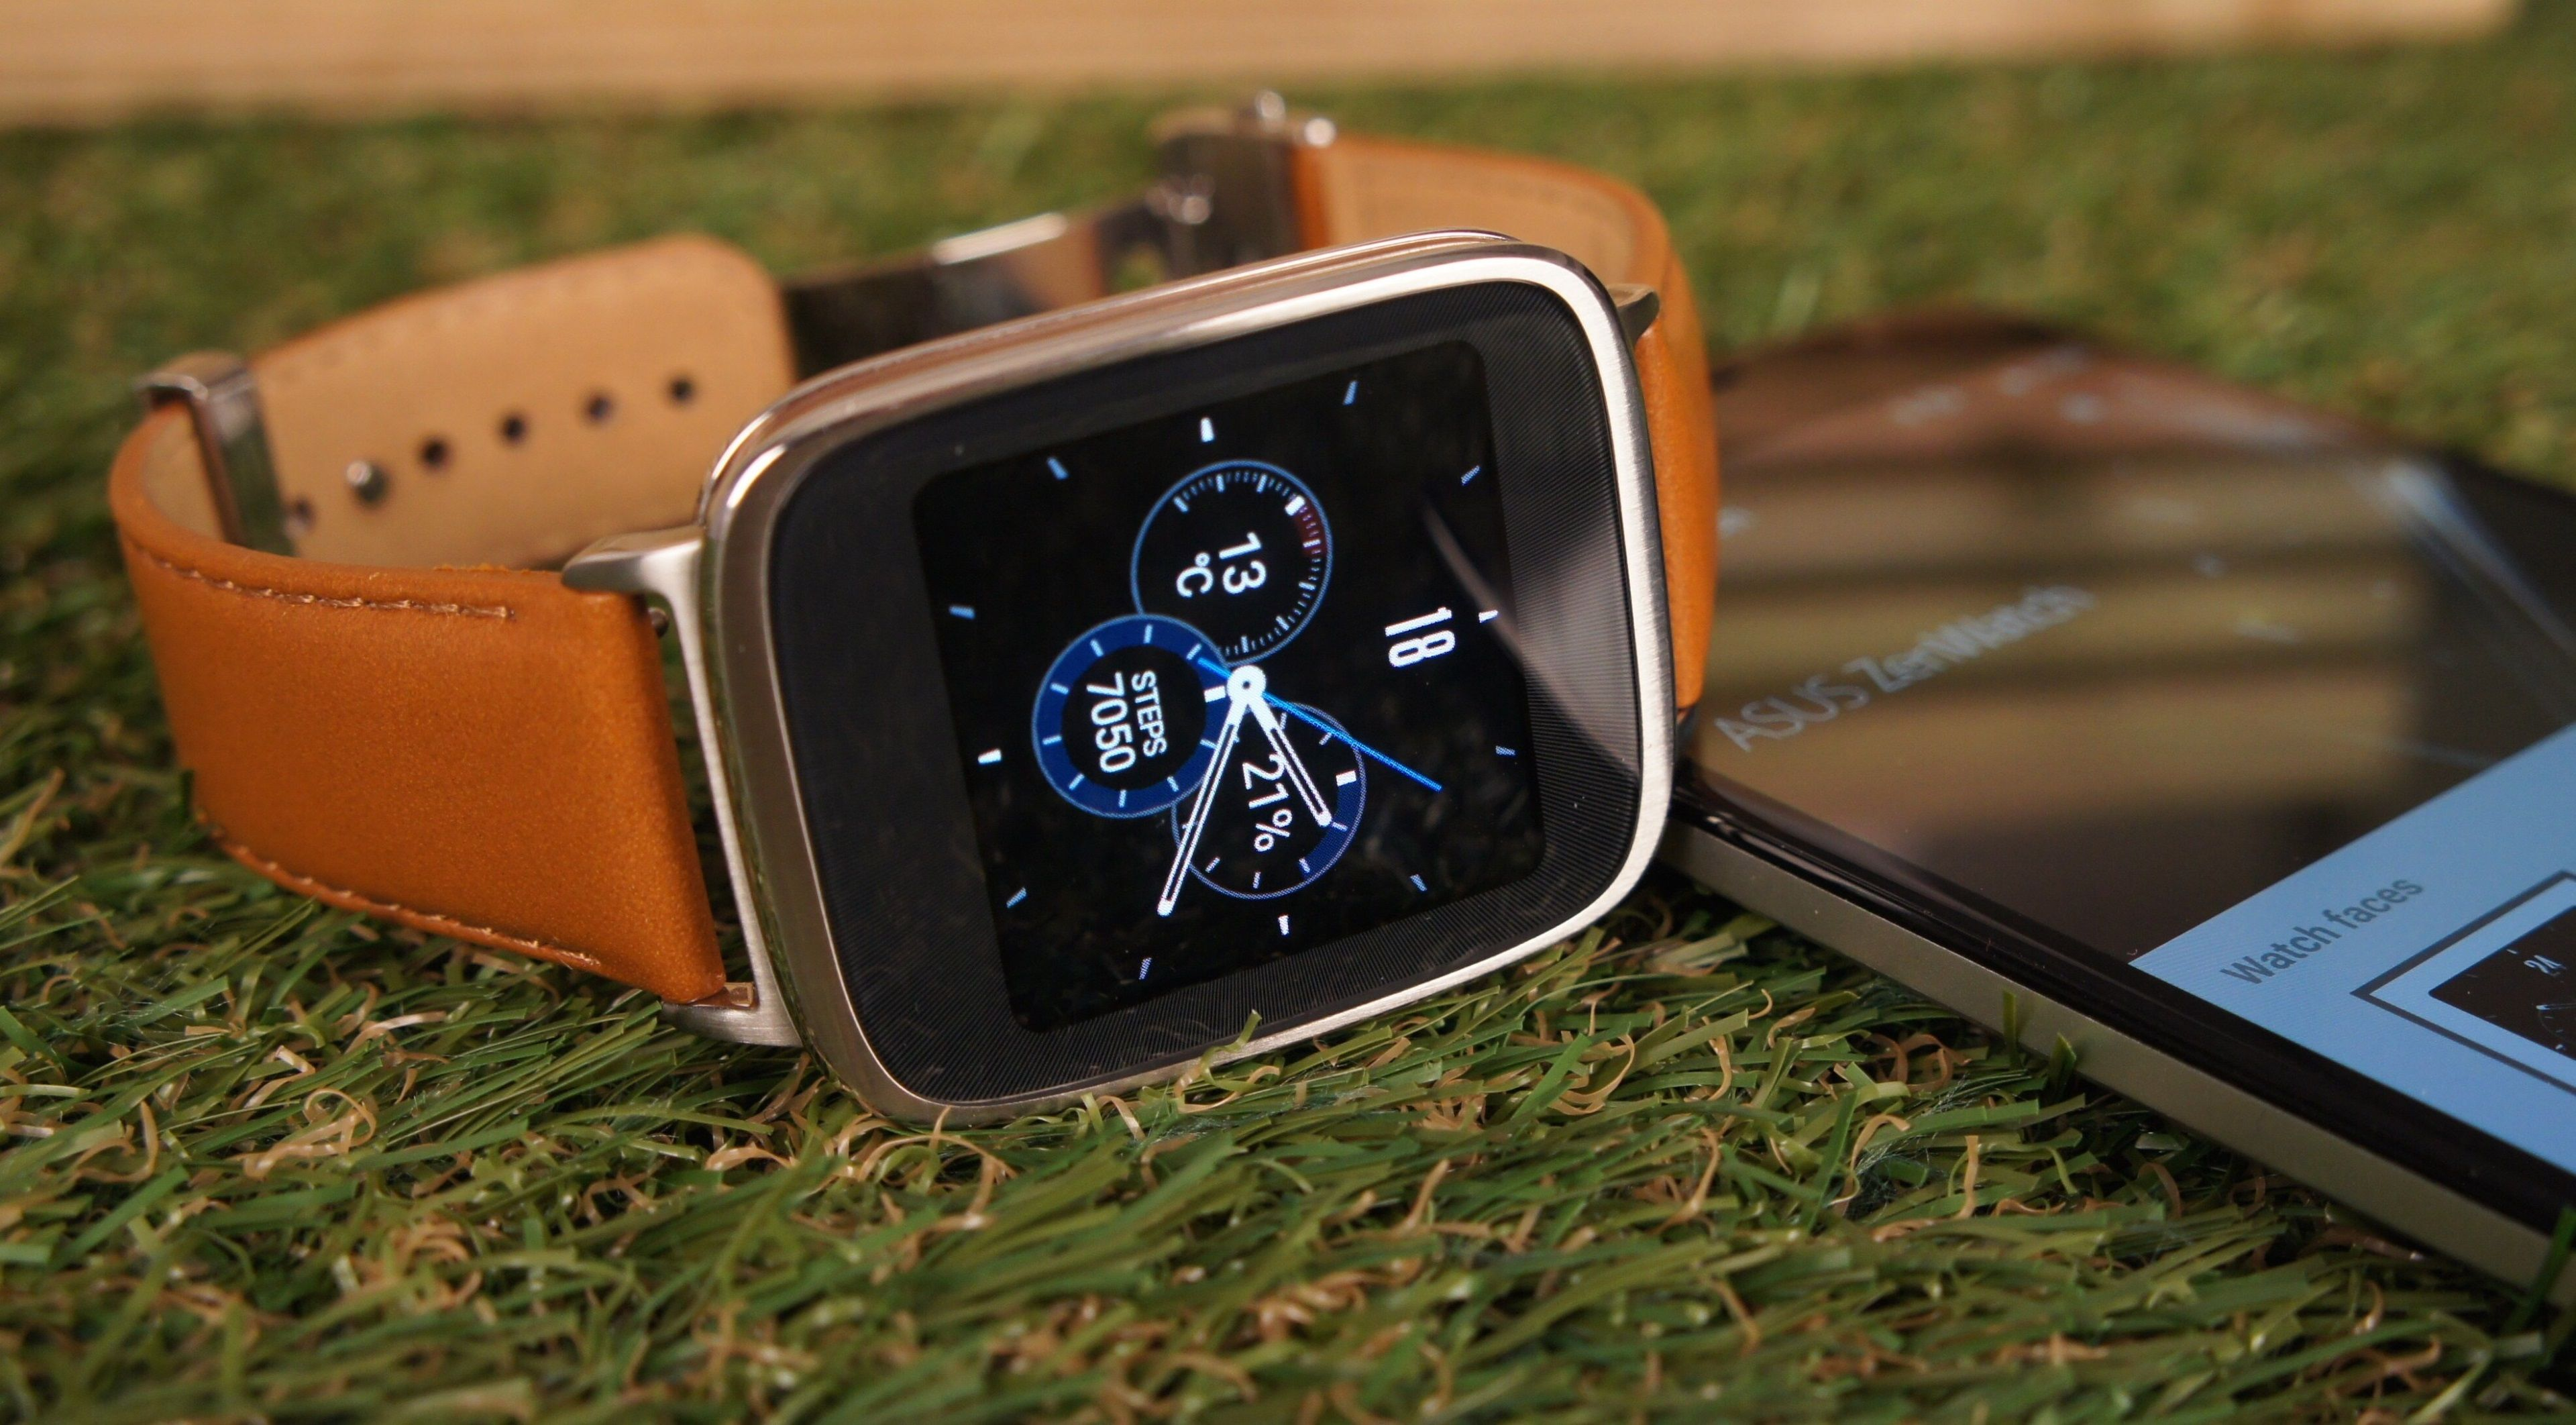 3840x2124 Asus Zenwatch 2 4k Computer Hd Wallpaper Download Smart Watch Smart Wearable Devices Asus